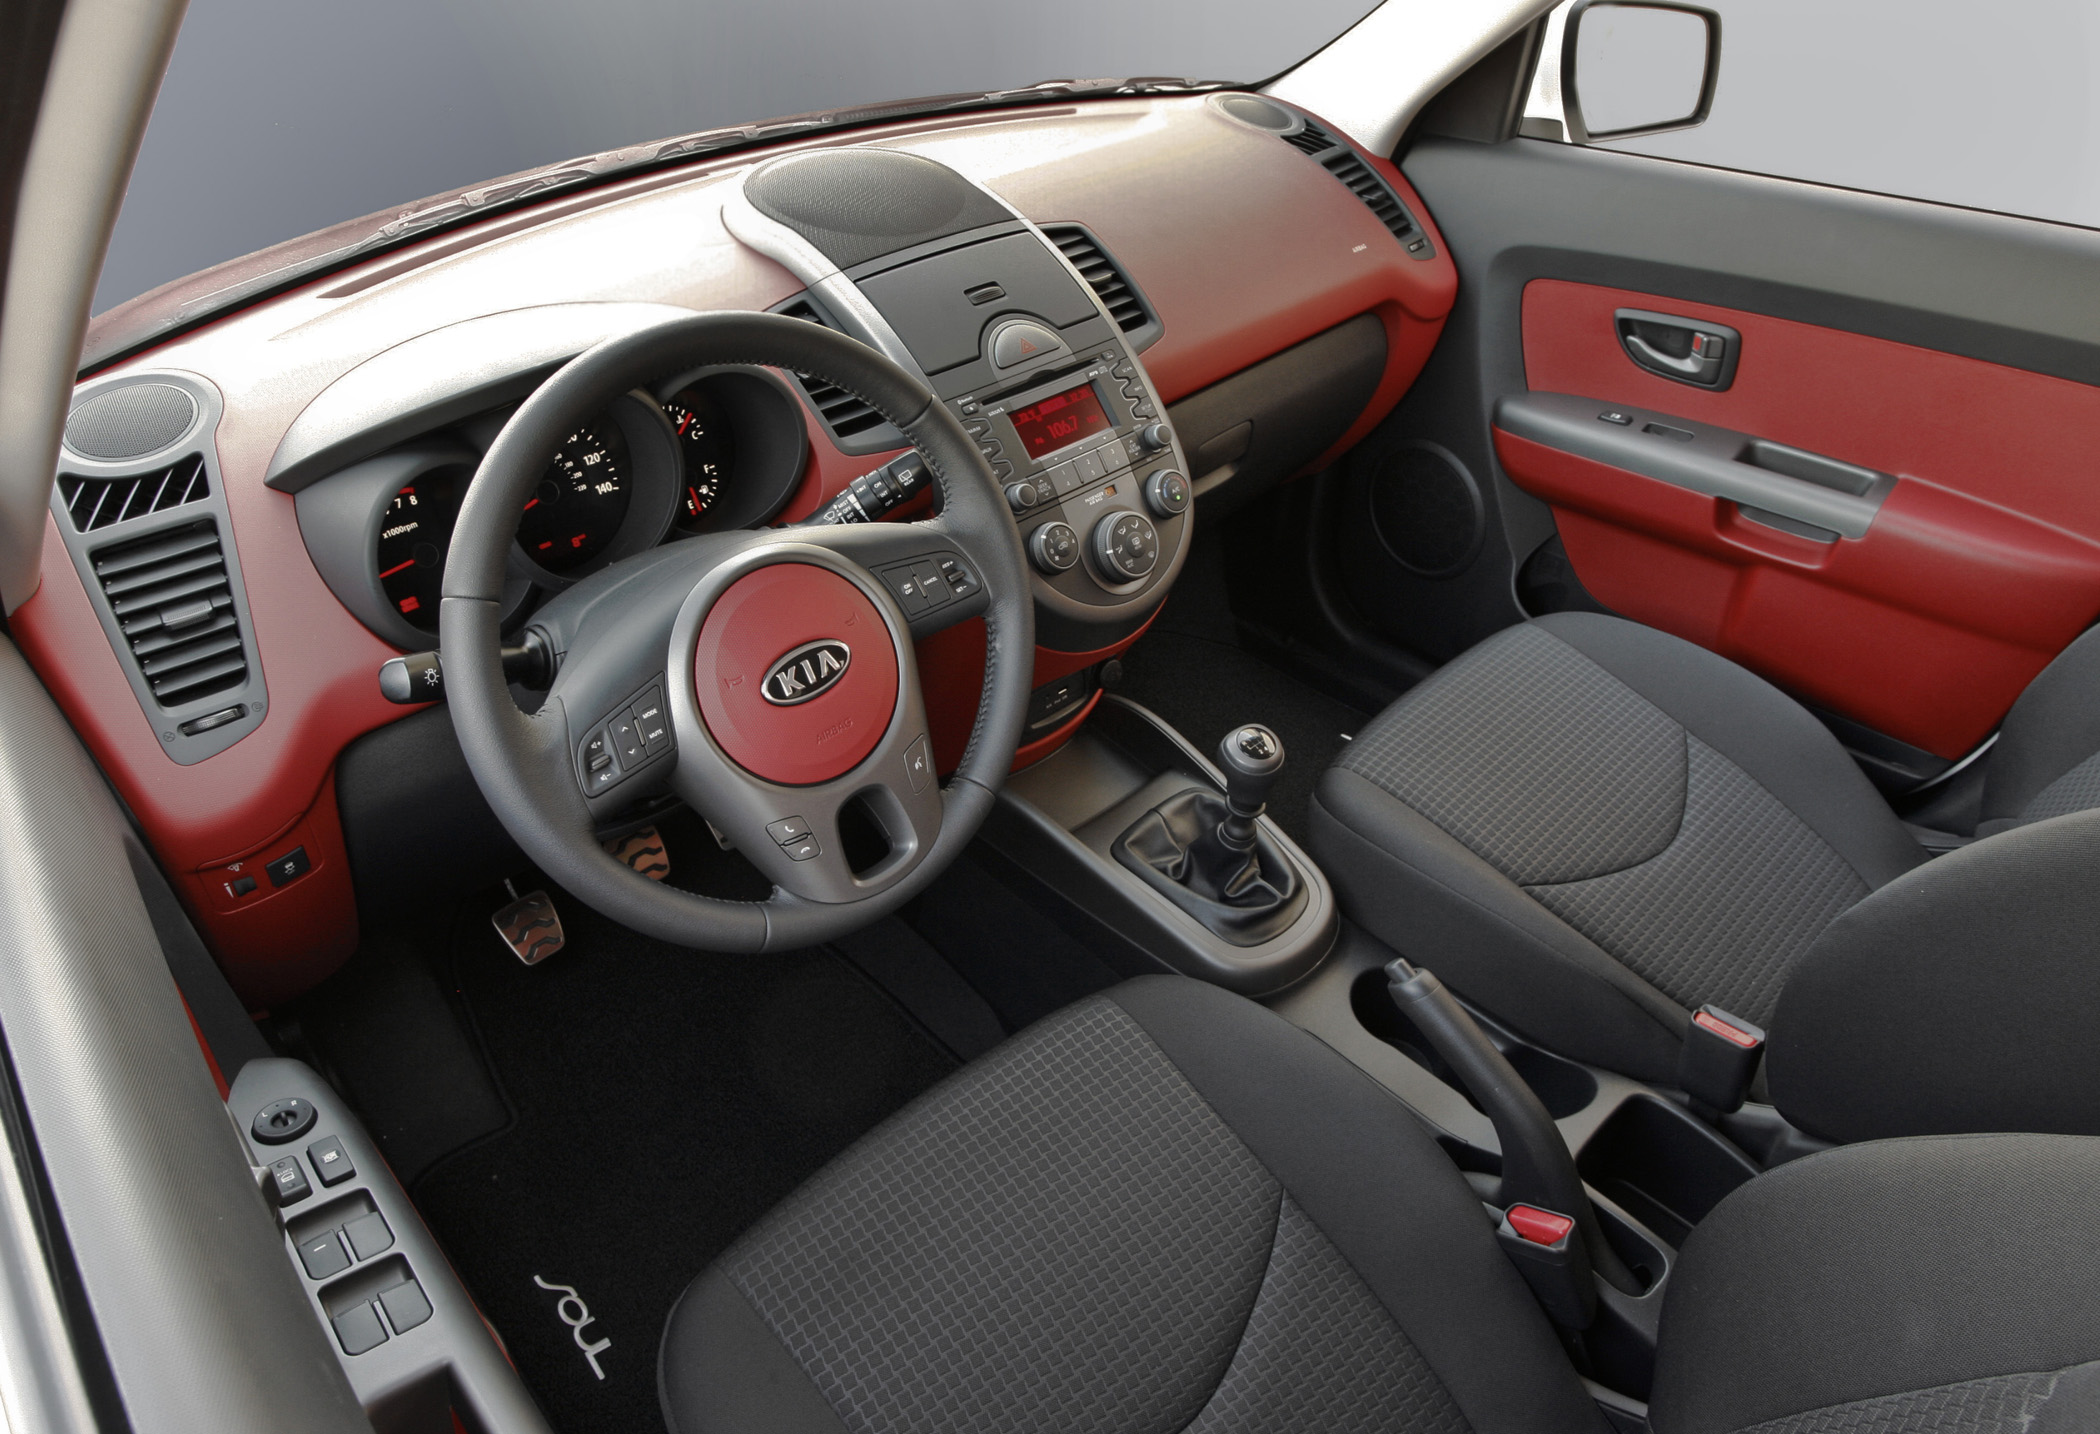 2010 Kia Soul Small Car Affordability Big Design On Inside New